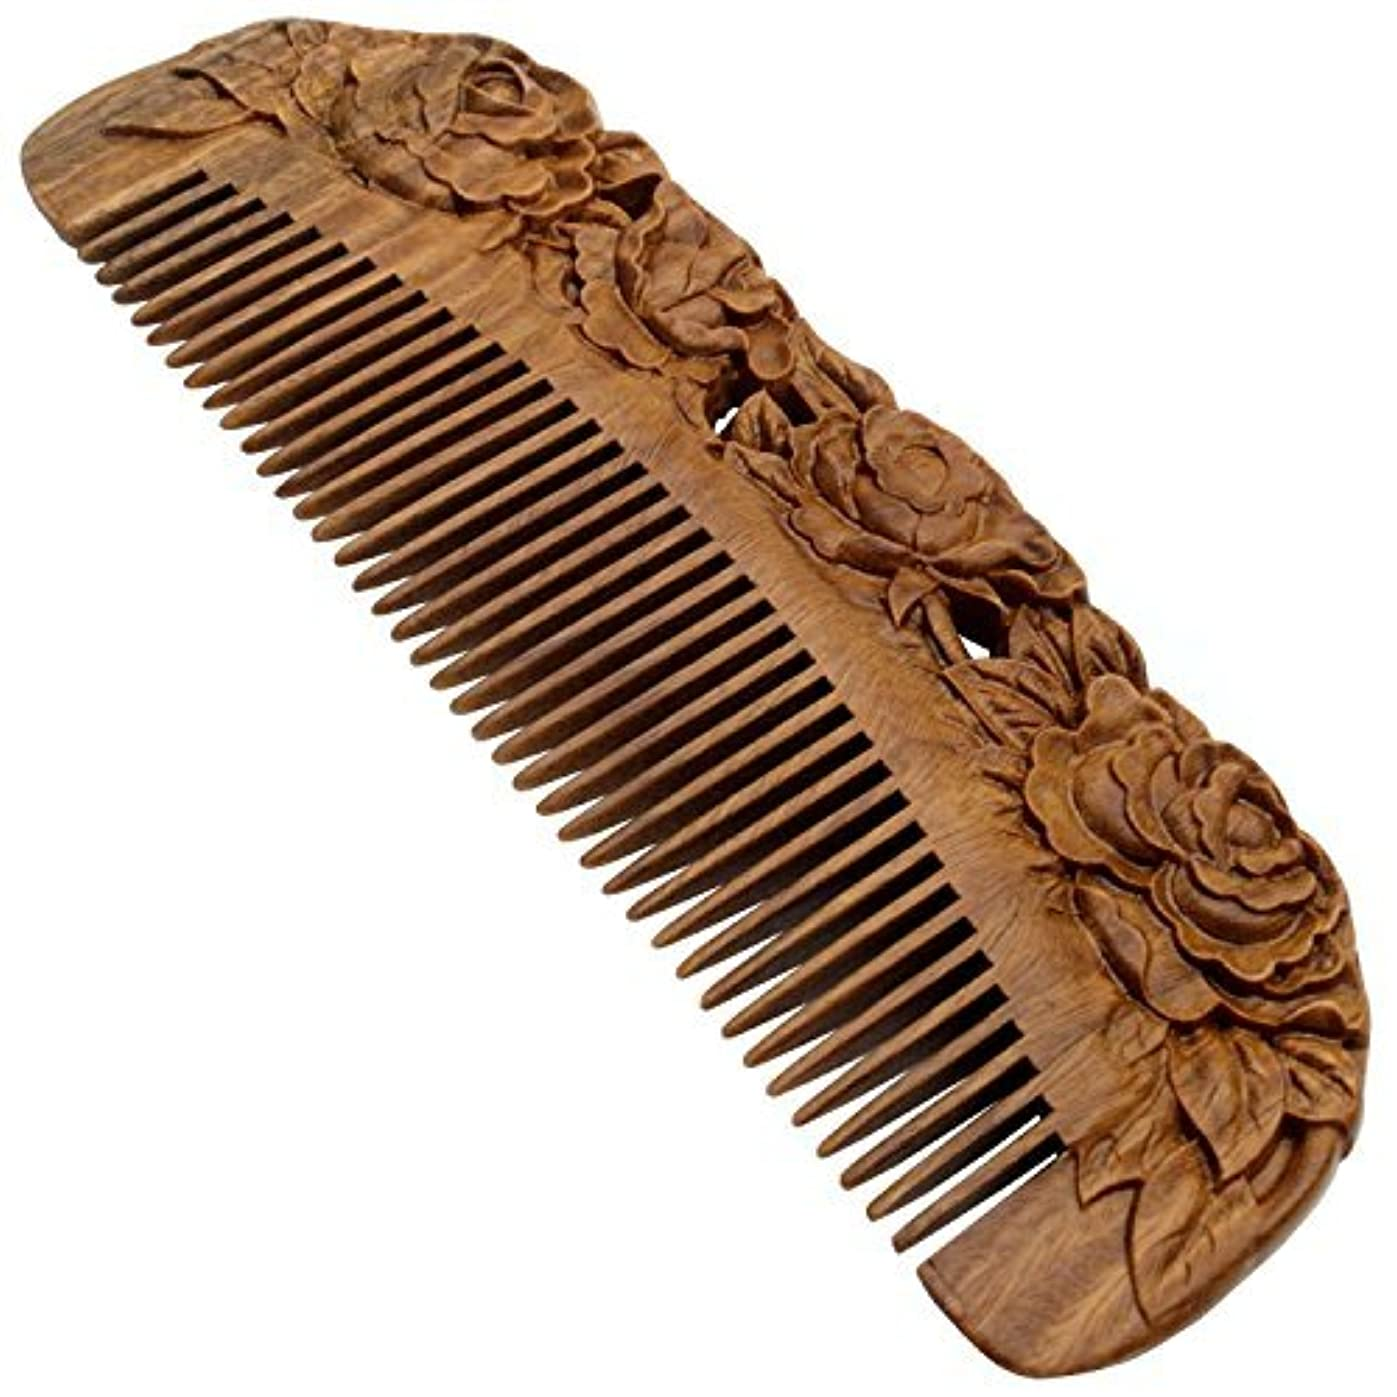 哲学博士痛い操作YOY Handmade Carved Natural Sandalwood Hair Comb - Anti-static No Snag Brush for Men's Mustache Beard Care Anti...